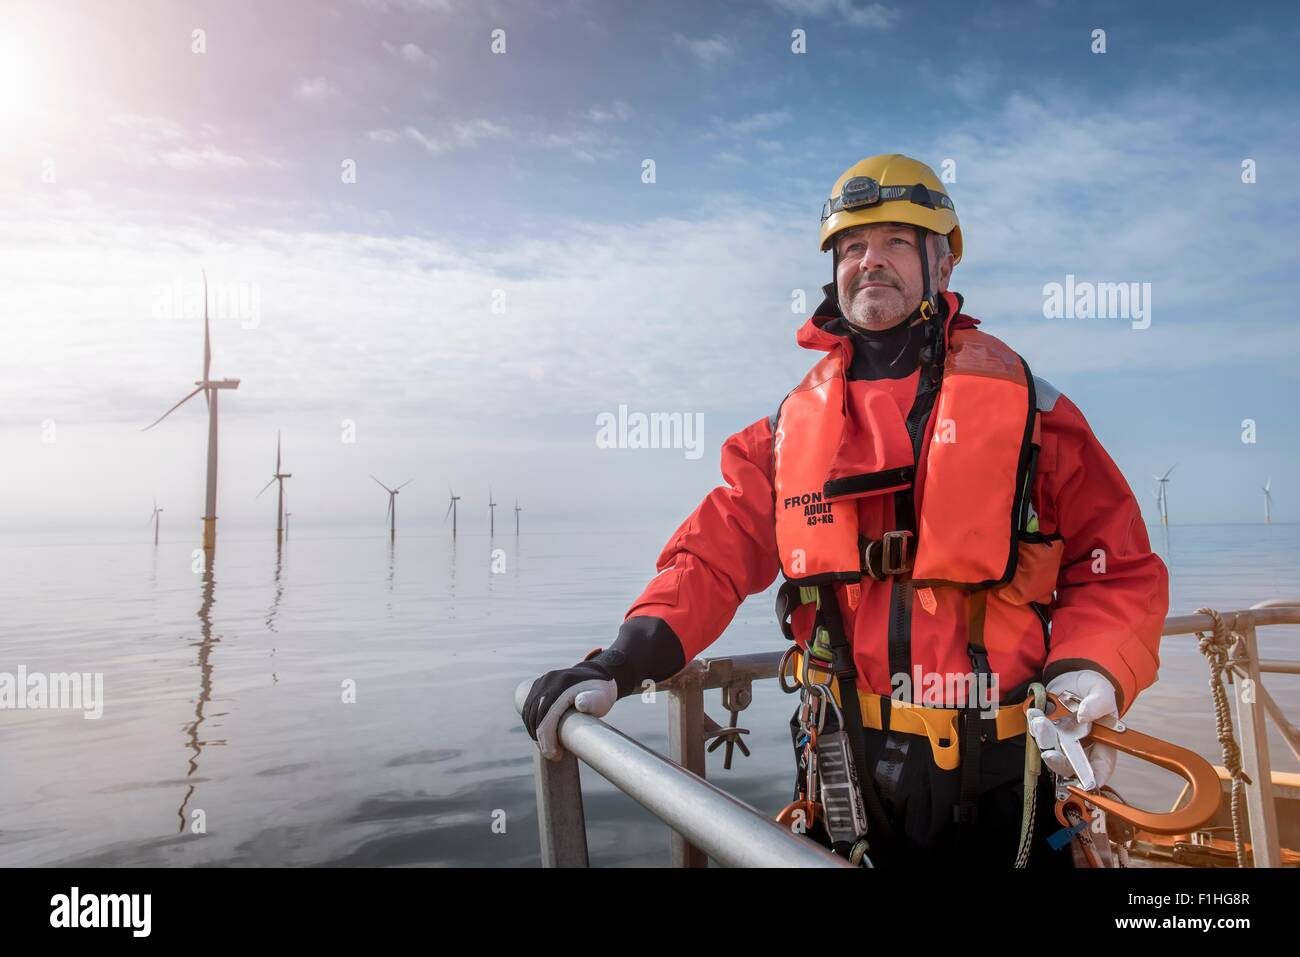 Portrait of engineer on boat at offshore windfarm - Stock Image